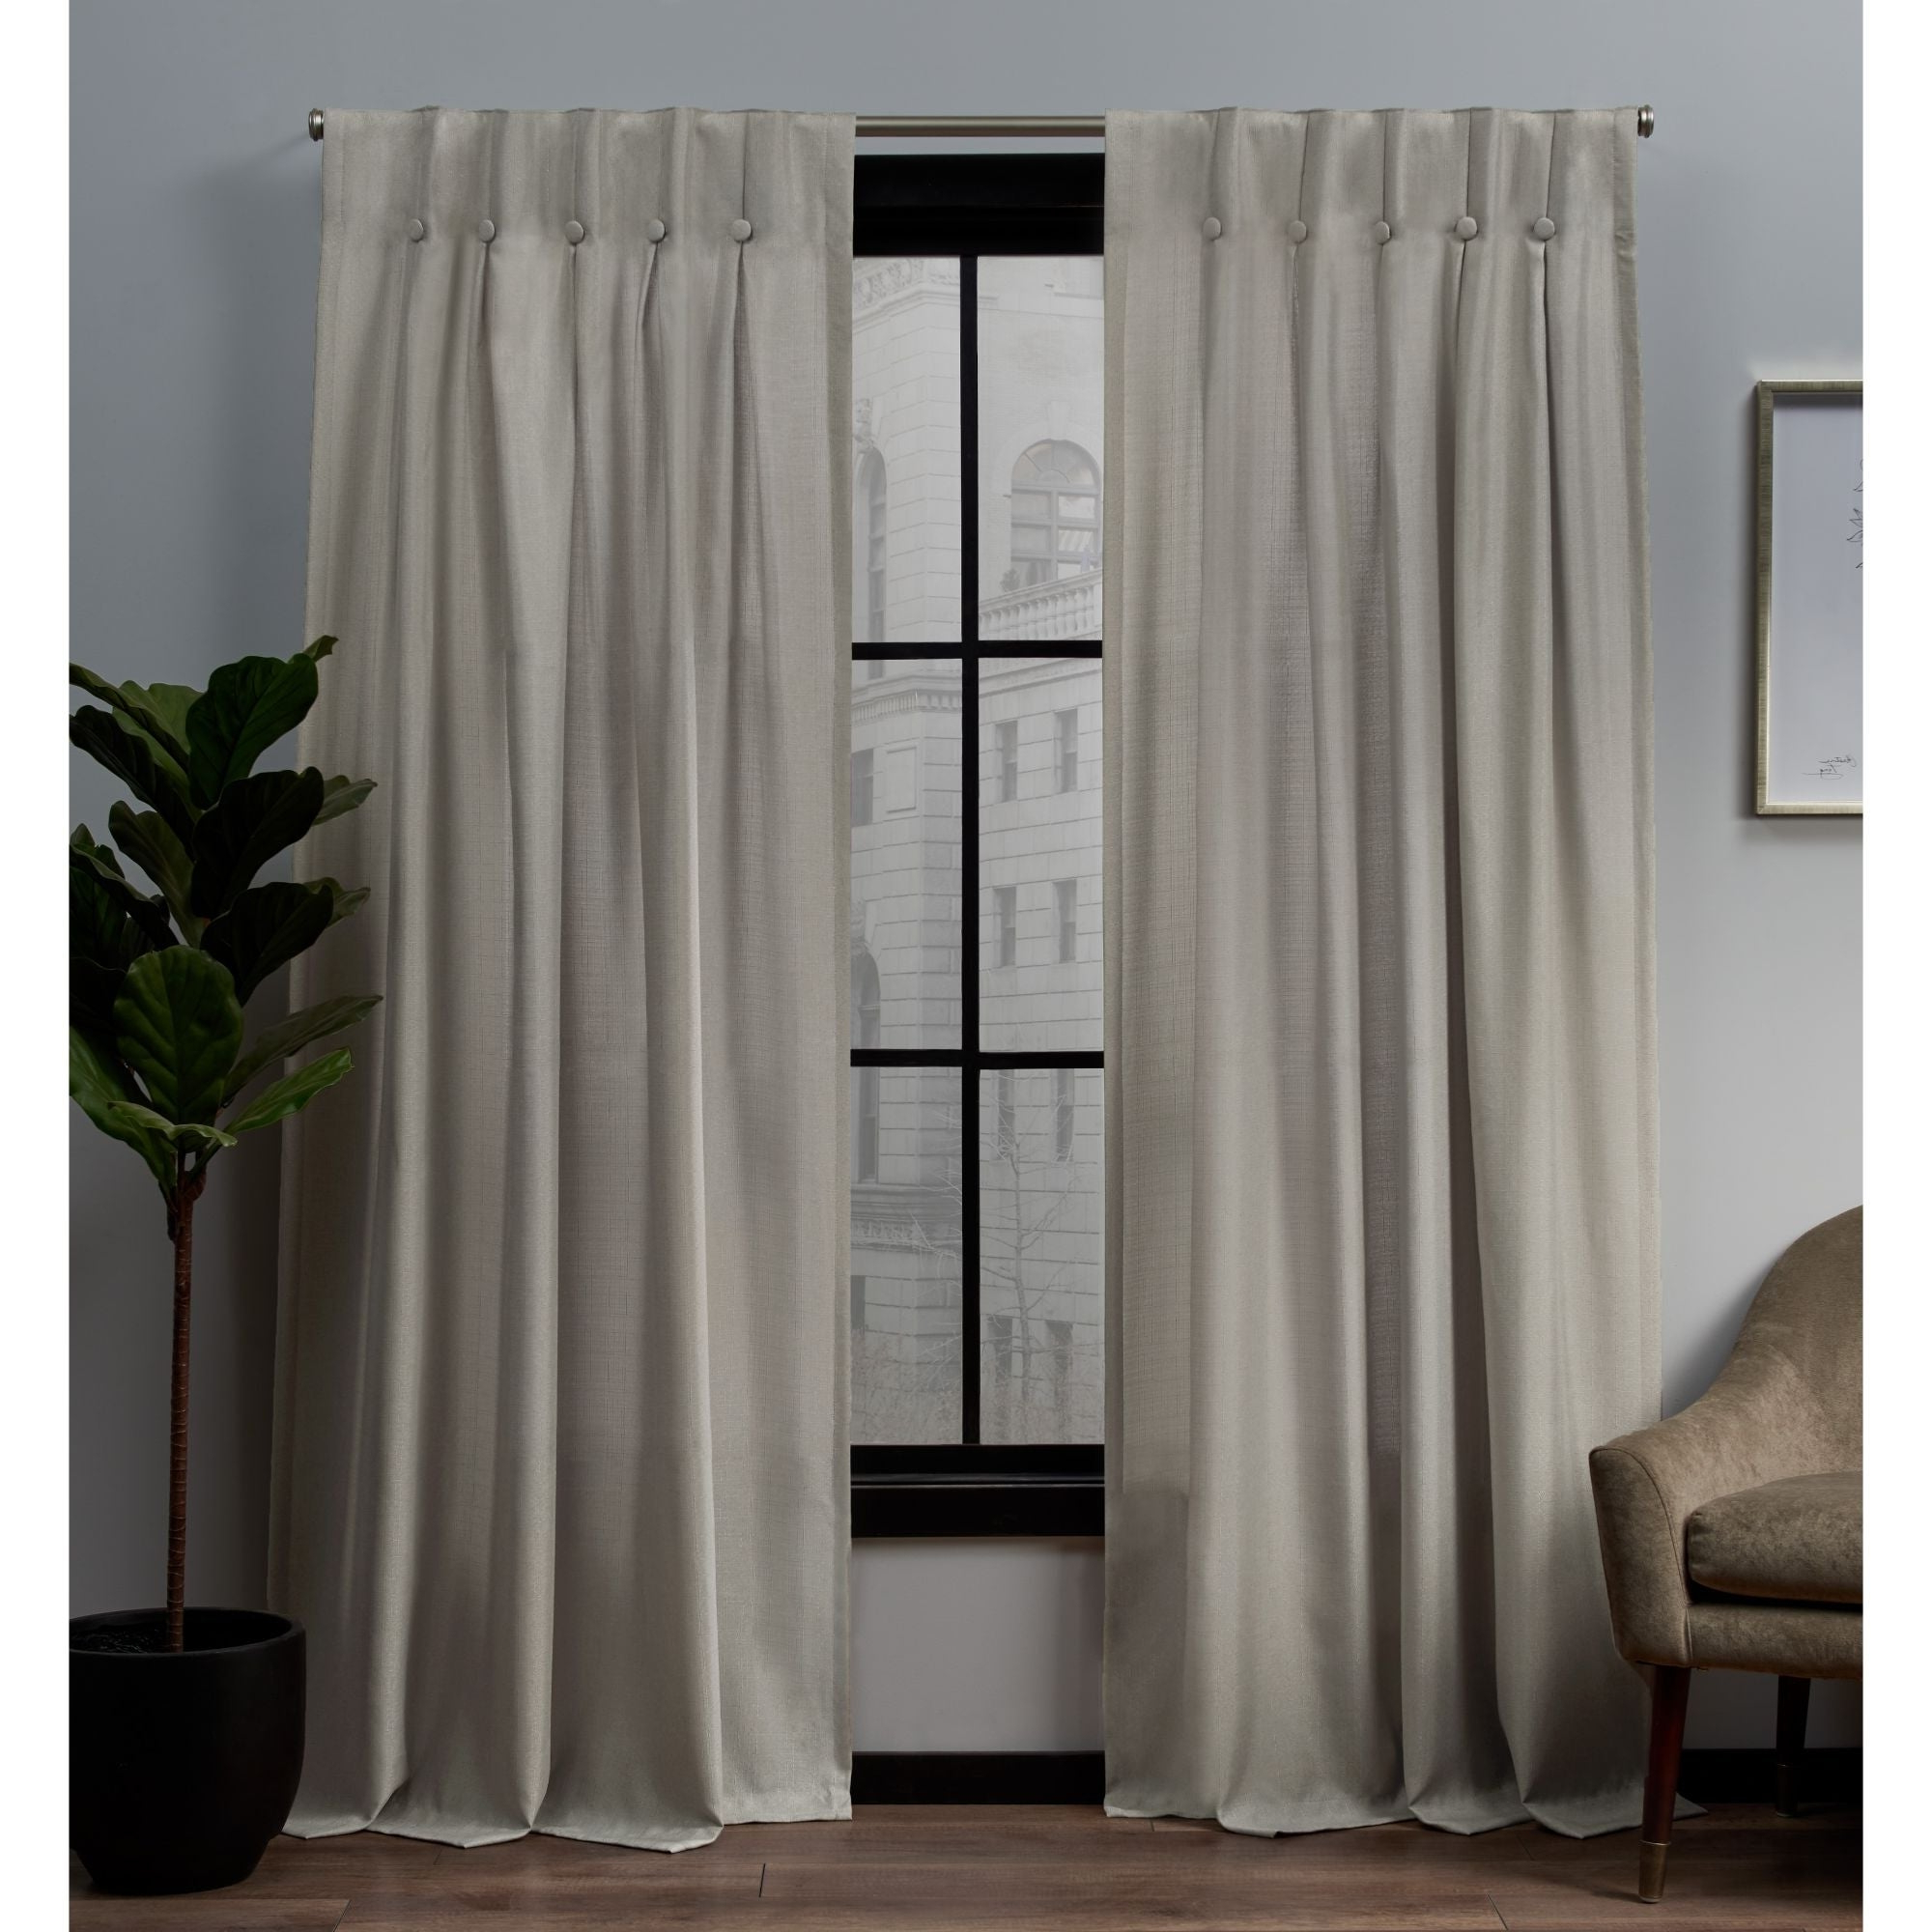 The Gray Barn Kind Koala Curtain Panel Pairs With Regard To Most Recent Copper Grove Popovo Linen Button Top Window Curtain Panel Pair (View 7 of 20)